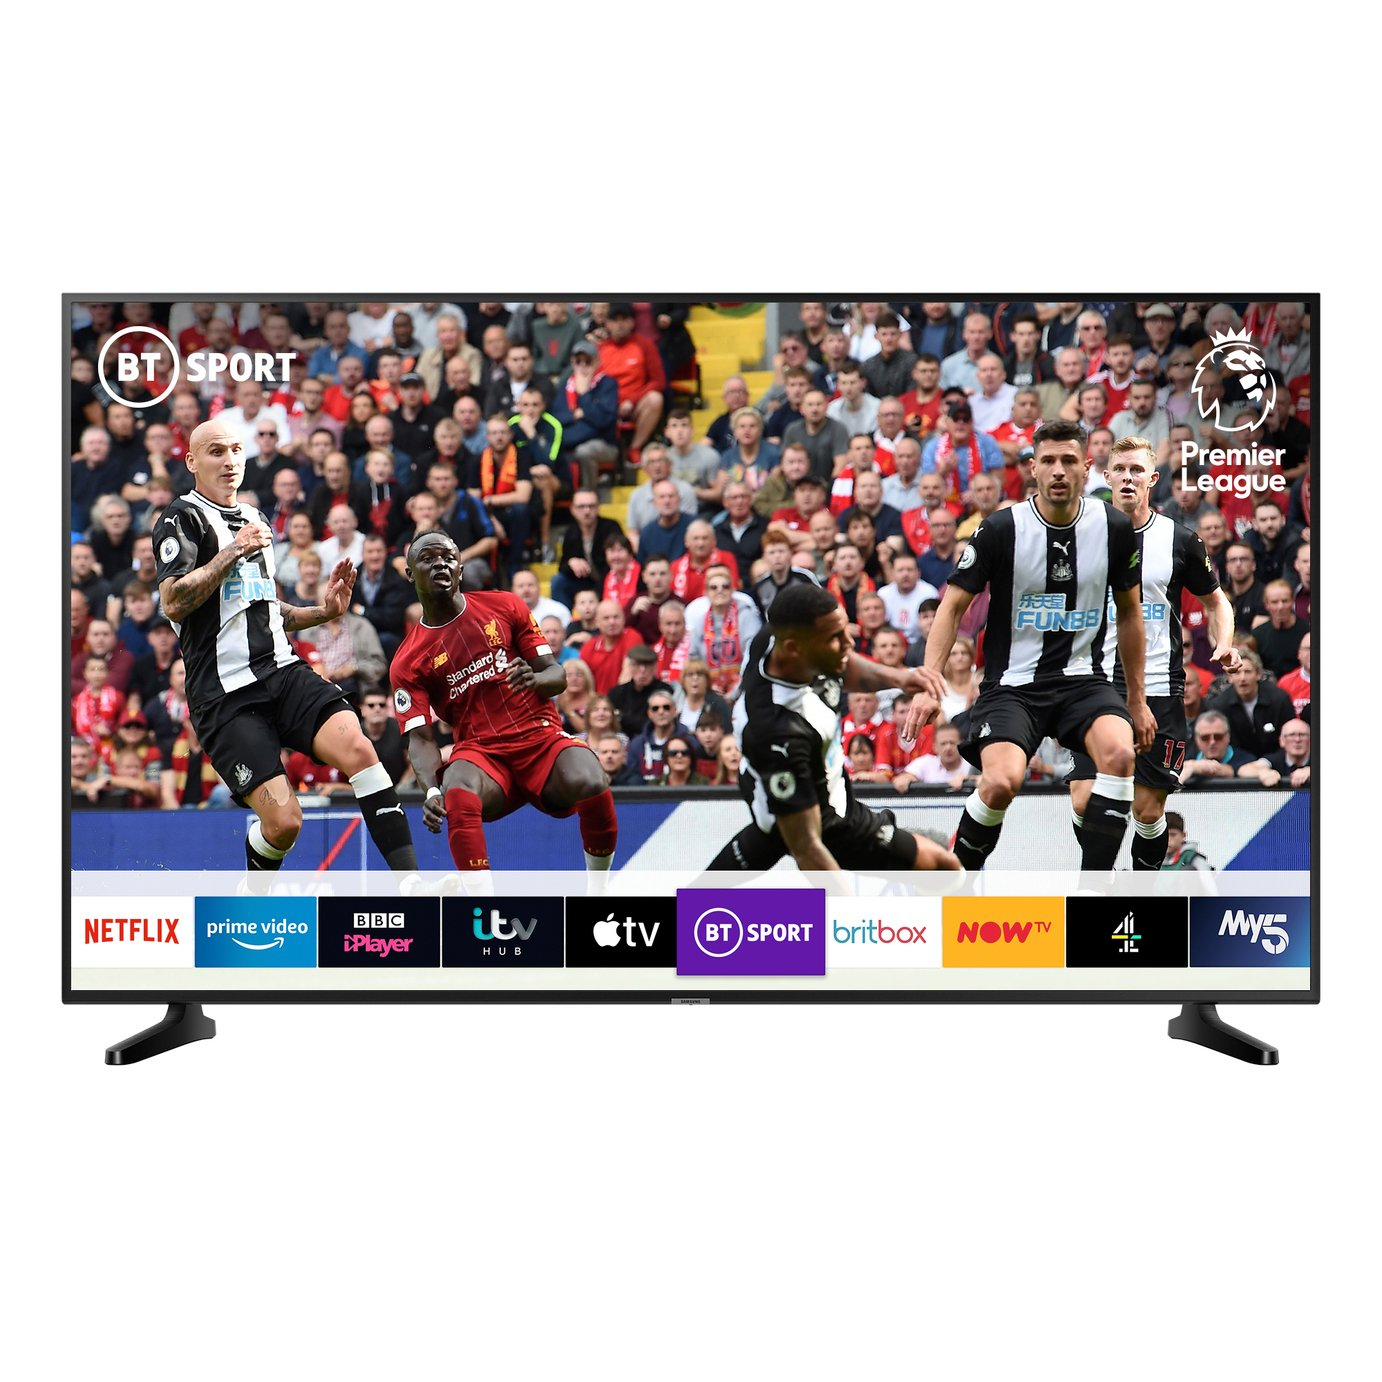 Samsung 50 Inch UE50RU7020 Smart 4K HDR LED TV